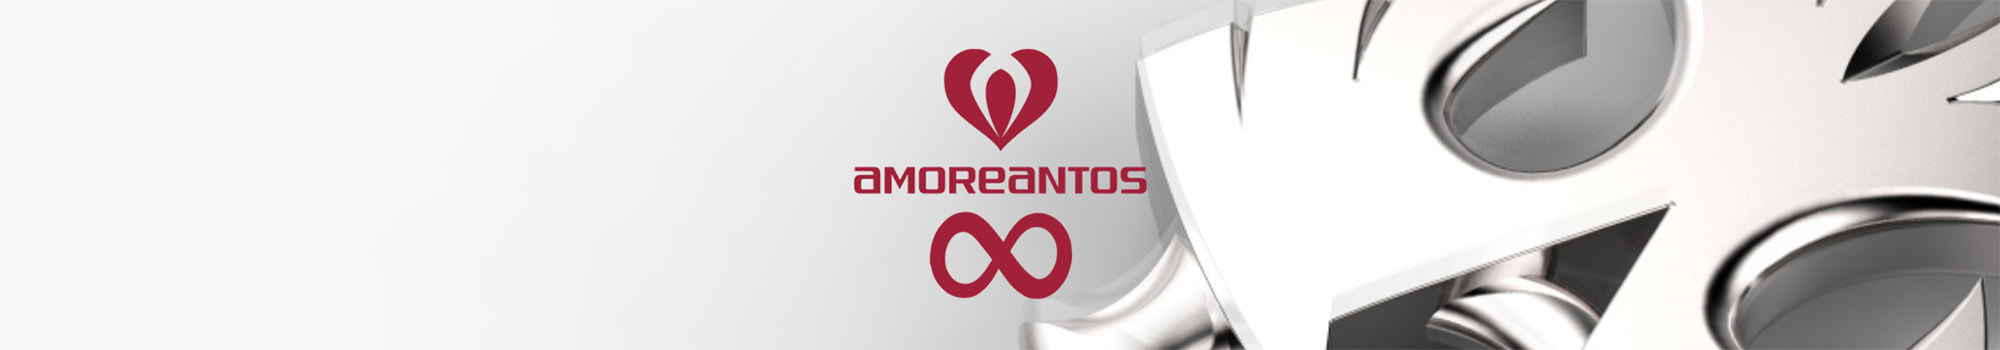 Amoreantos banner image